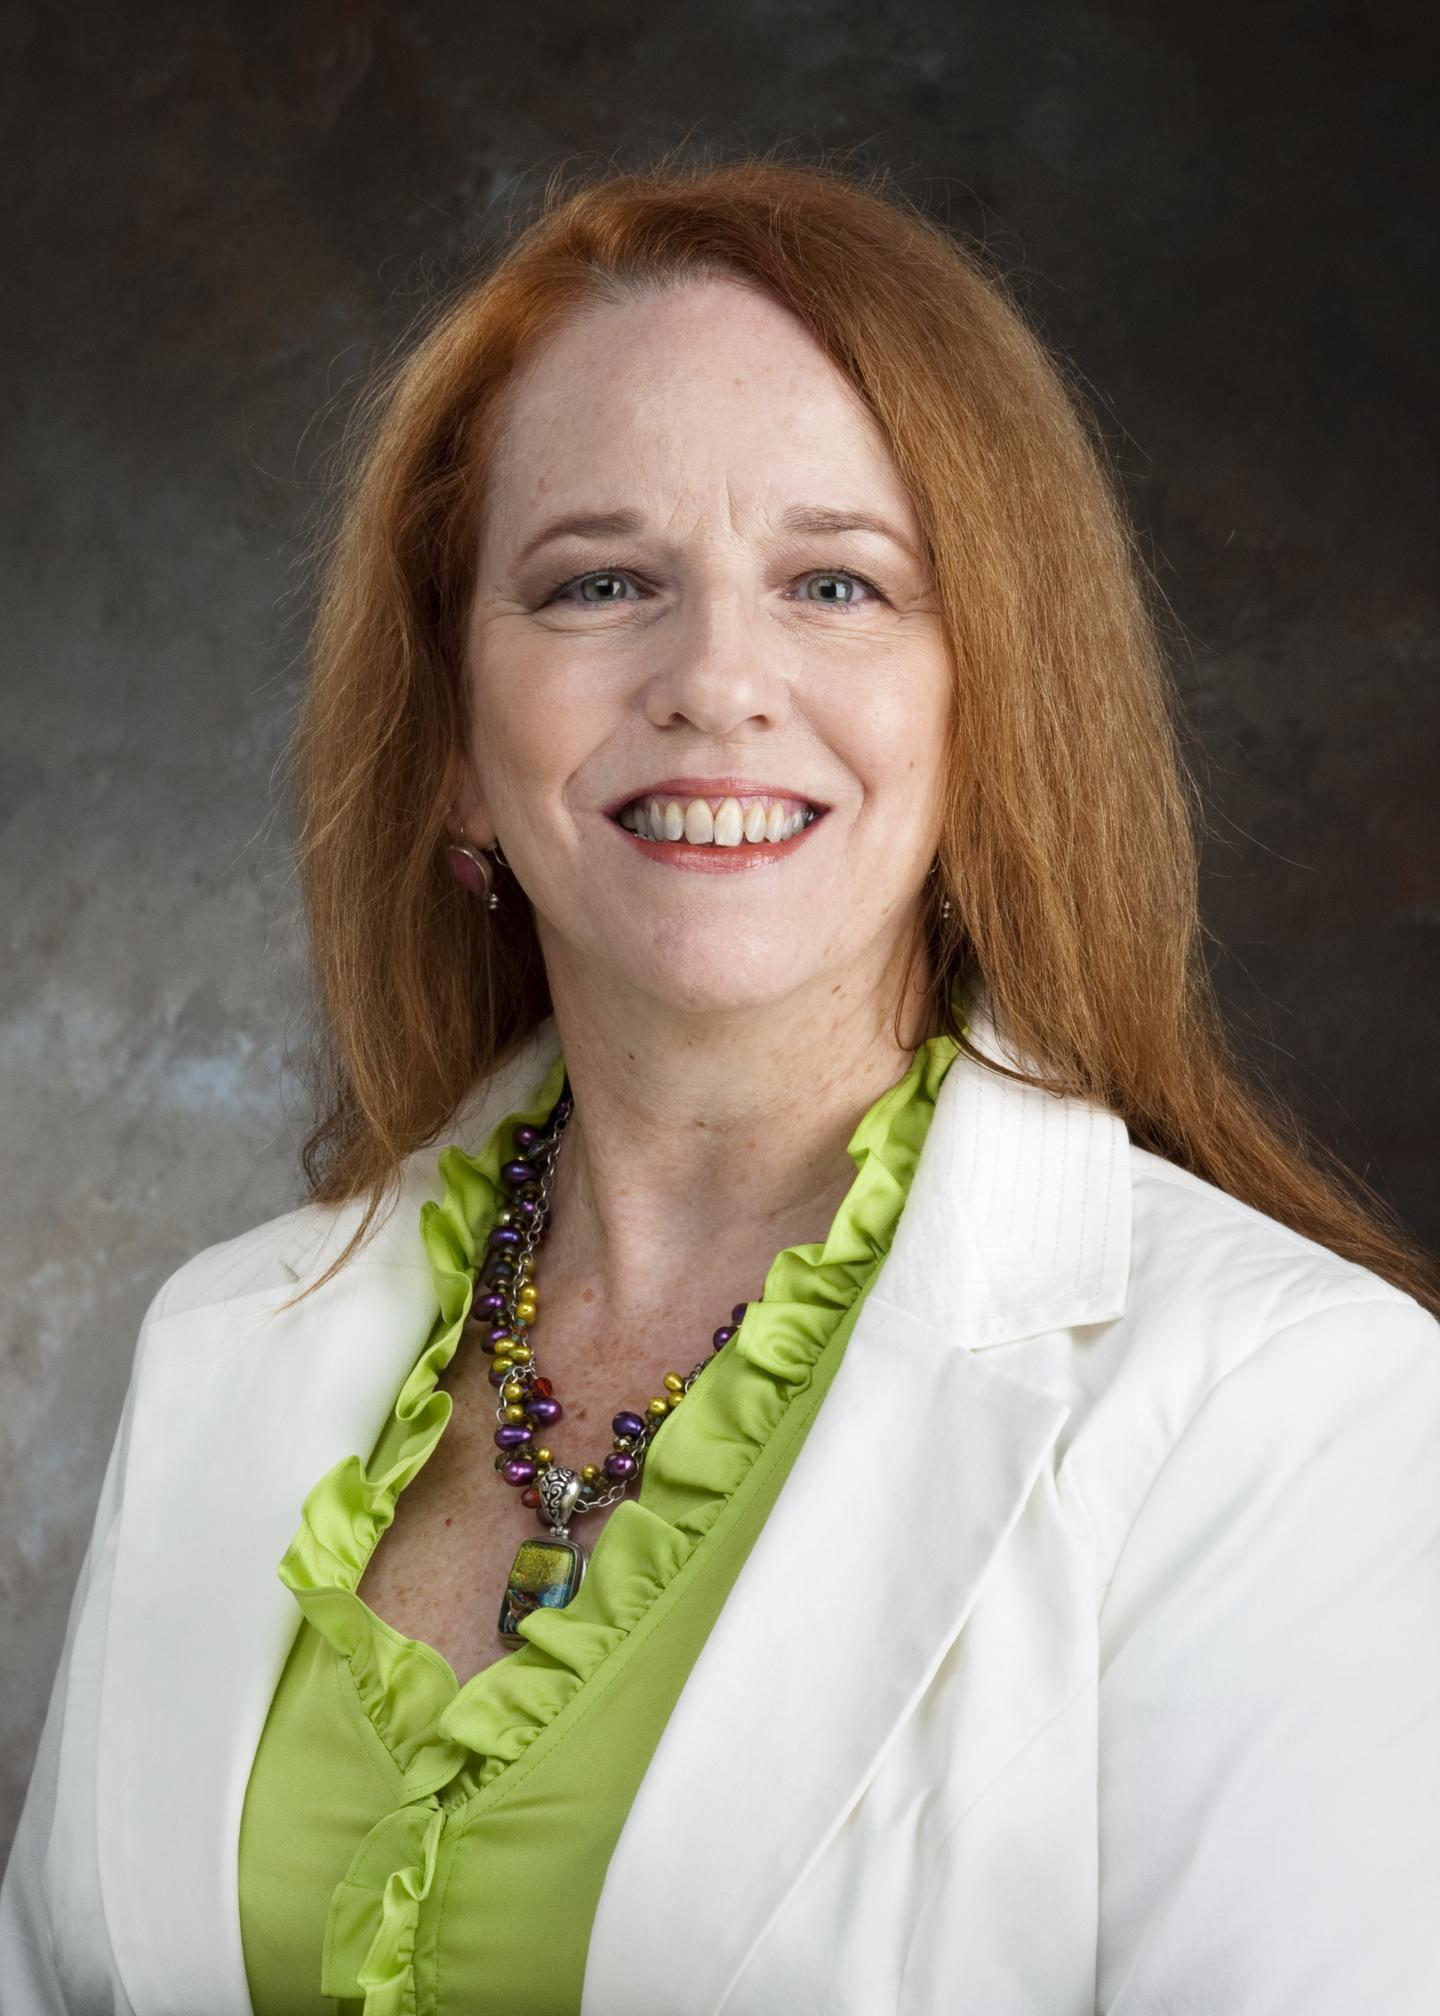 Kathryn A. Cunningham, The University of Texas Medical Branch at Galveston